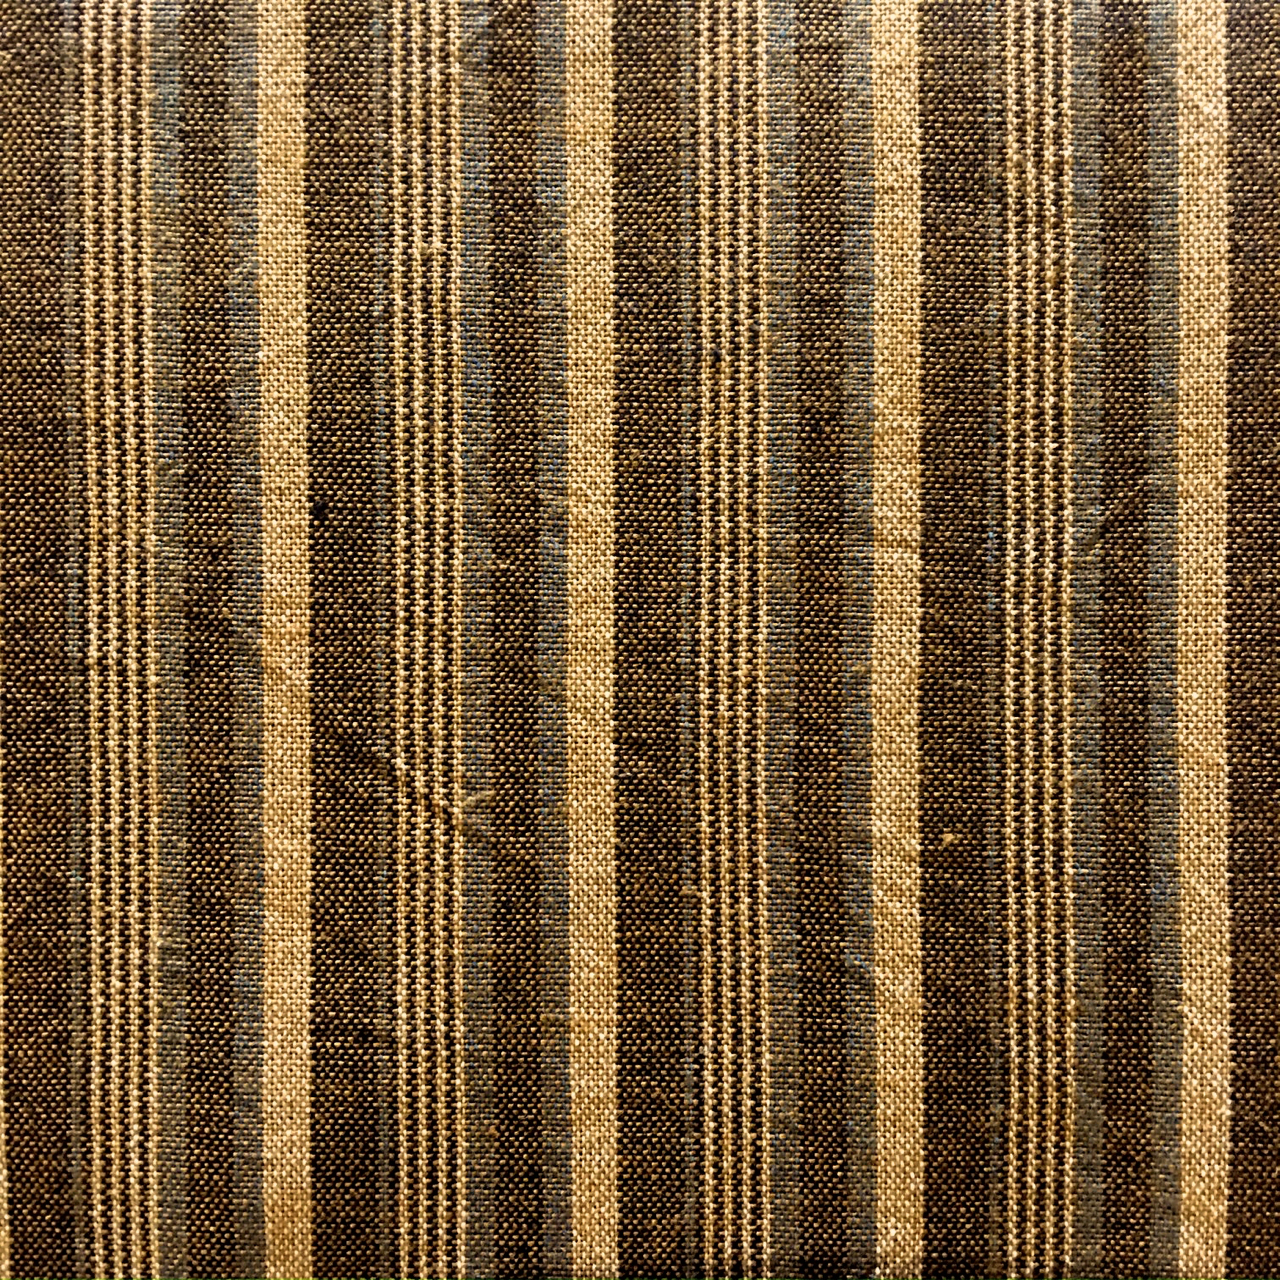 brown striped fabric